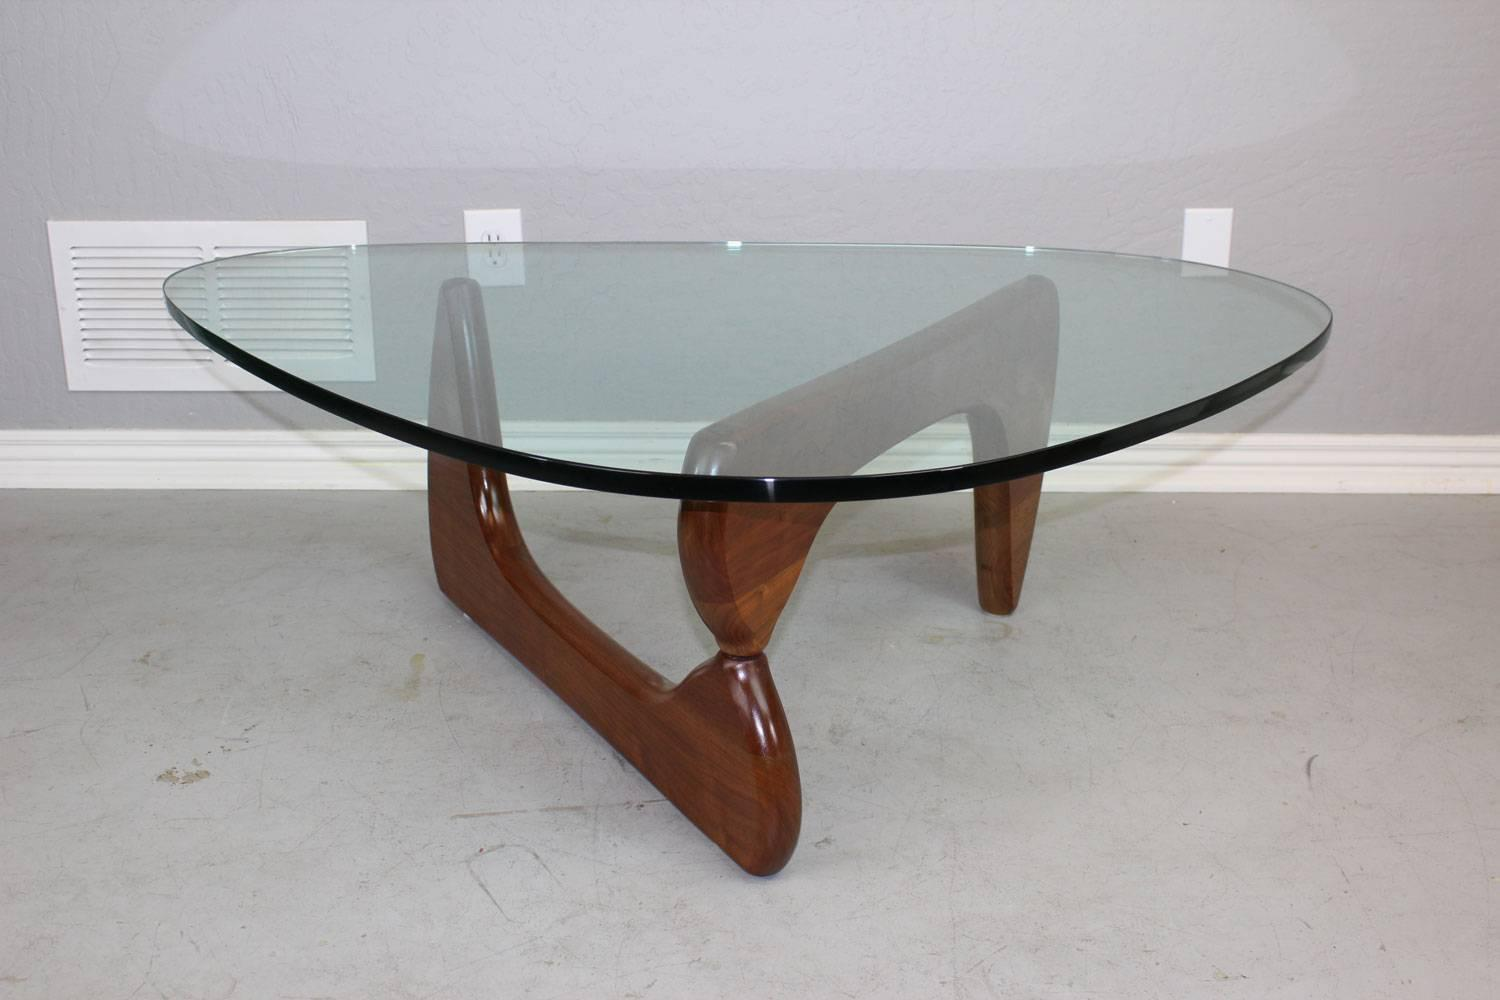 Isamu noguchi coffee table with walnut base and triangular glass top at 1stdibs Glass coffee table base